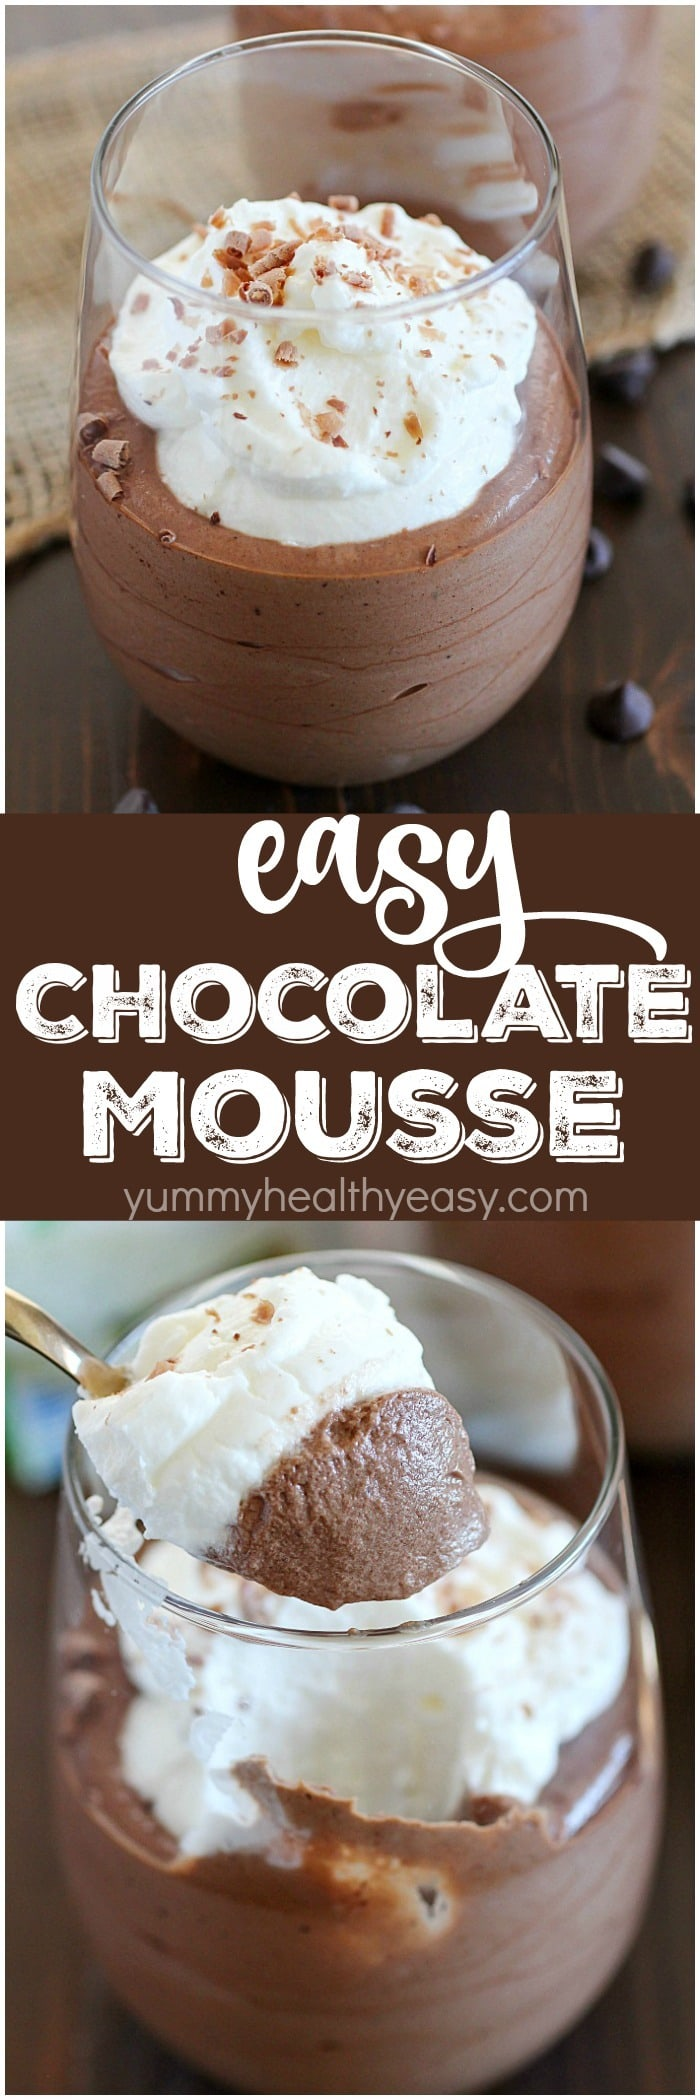 Chocolate Mousse that's incredibly easy to make with only 5 simple ingredients and a few steps from start to finish! You won't believe how creamy and totally delicious it is. Fancy enough for a party but easy enough for a quick dessert any night of the week. :) AD